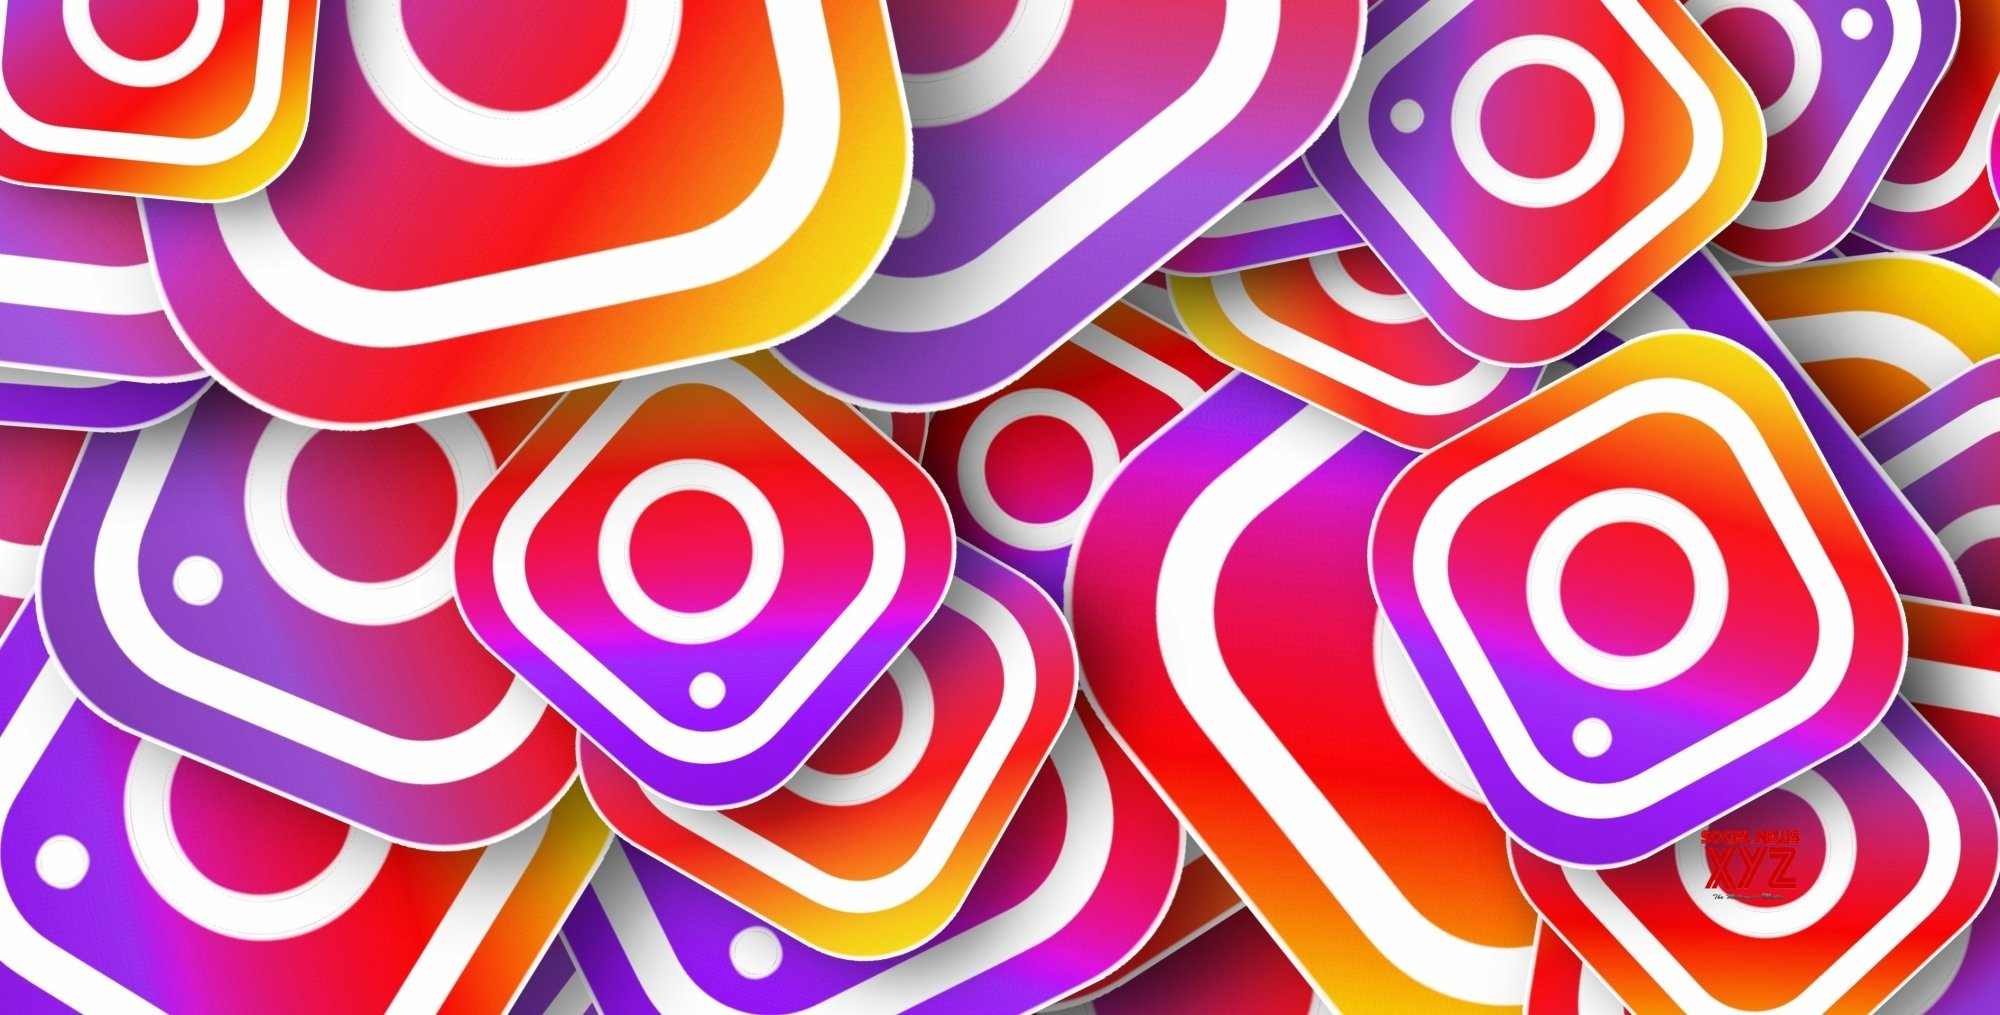 New Instagram tool to help users spot phishing emails